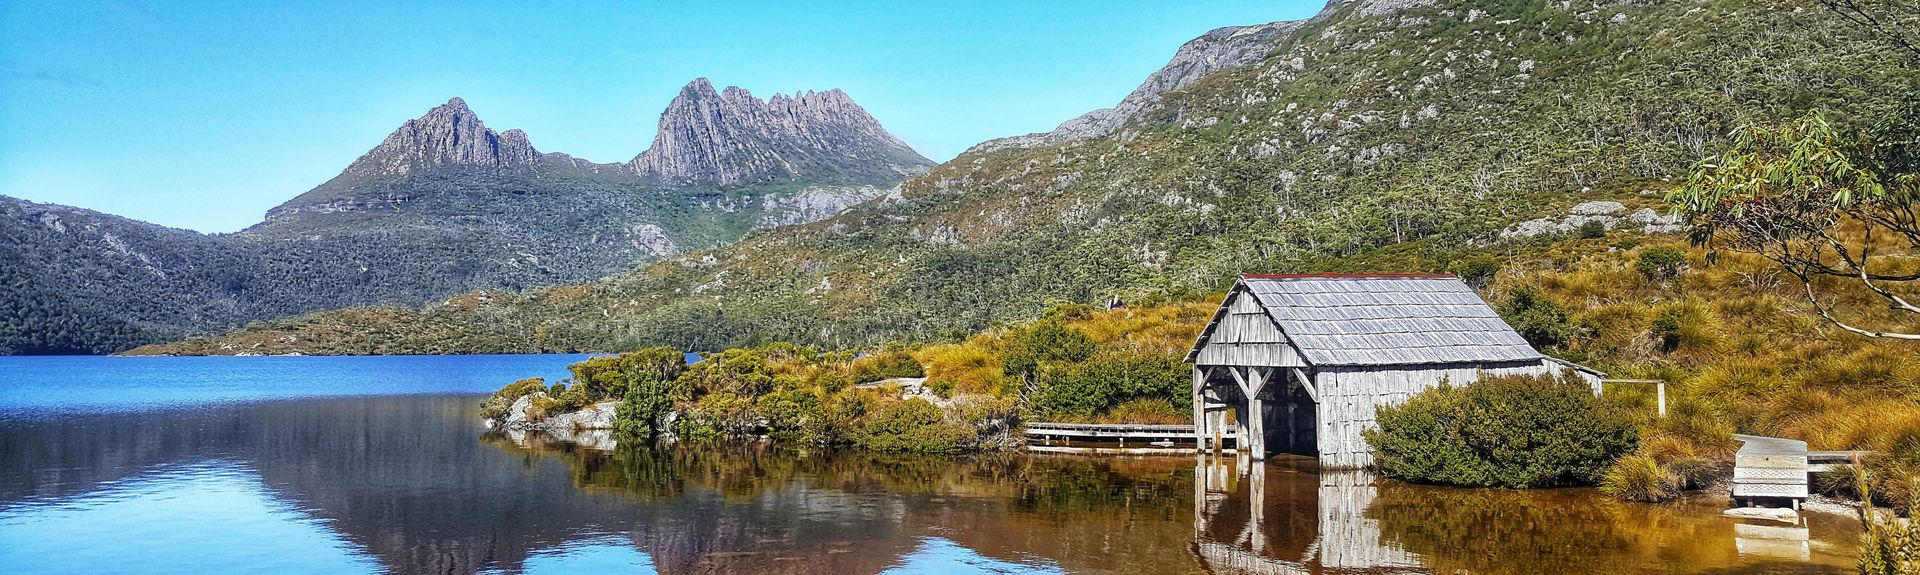 Cradle Mountain TAS, Australia